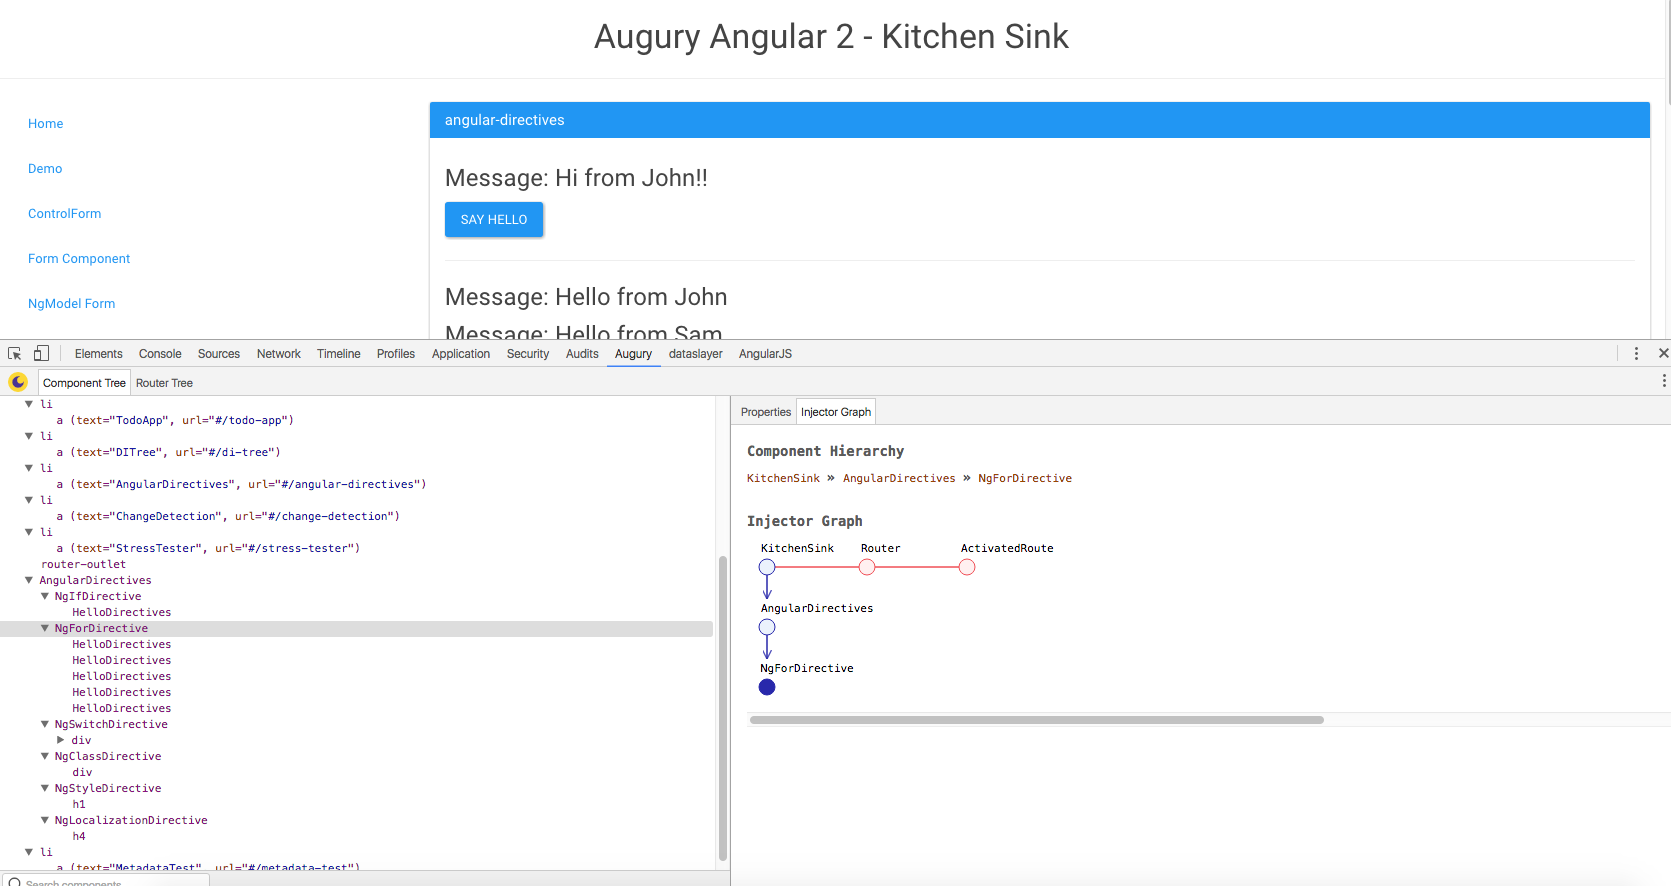 Augury Component tree | Angular 2 developer tools